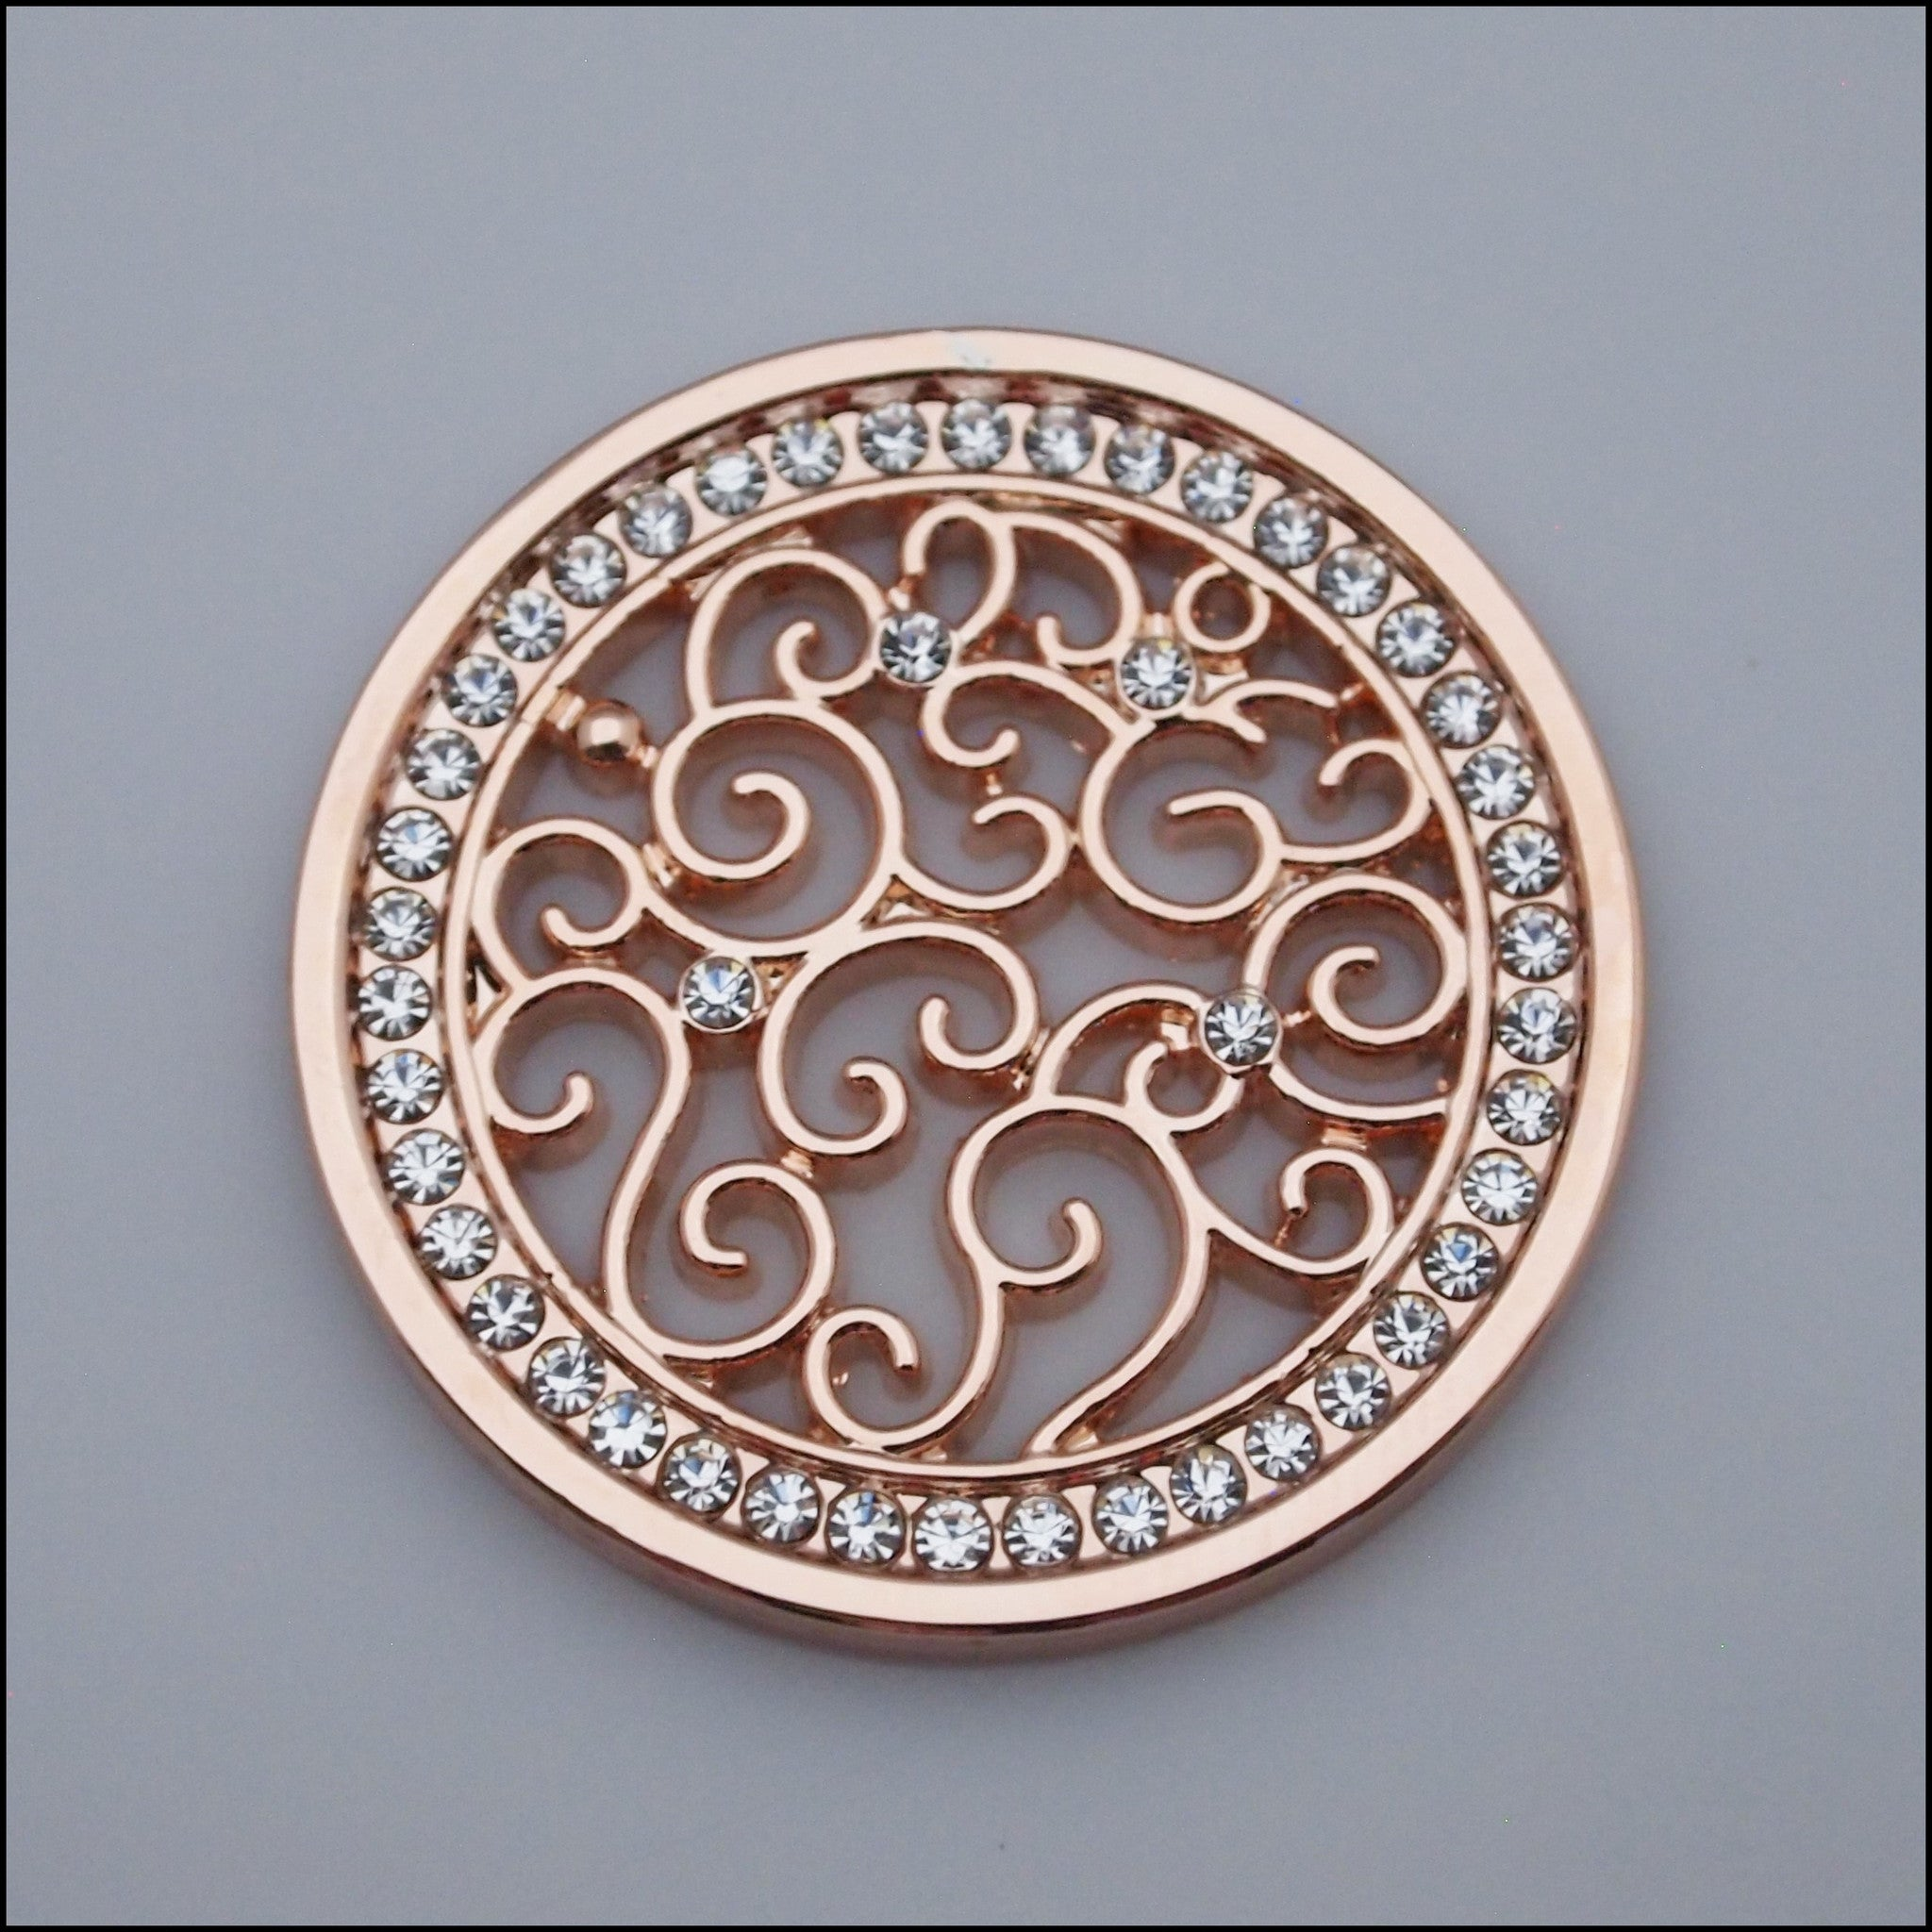 Coin for Coin Pendant - Decorative Swirls Rose Gold - Find Something Special